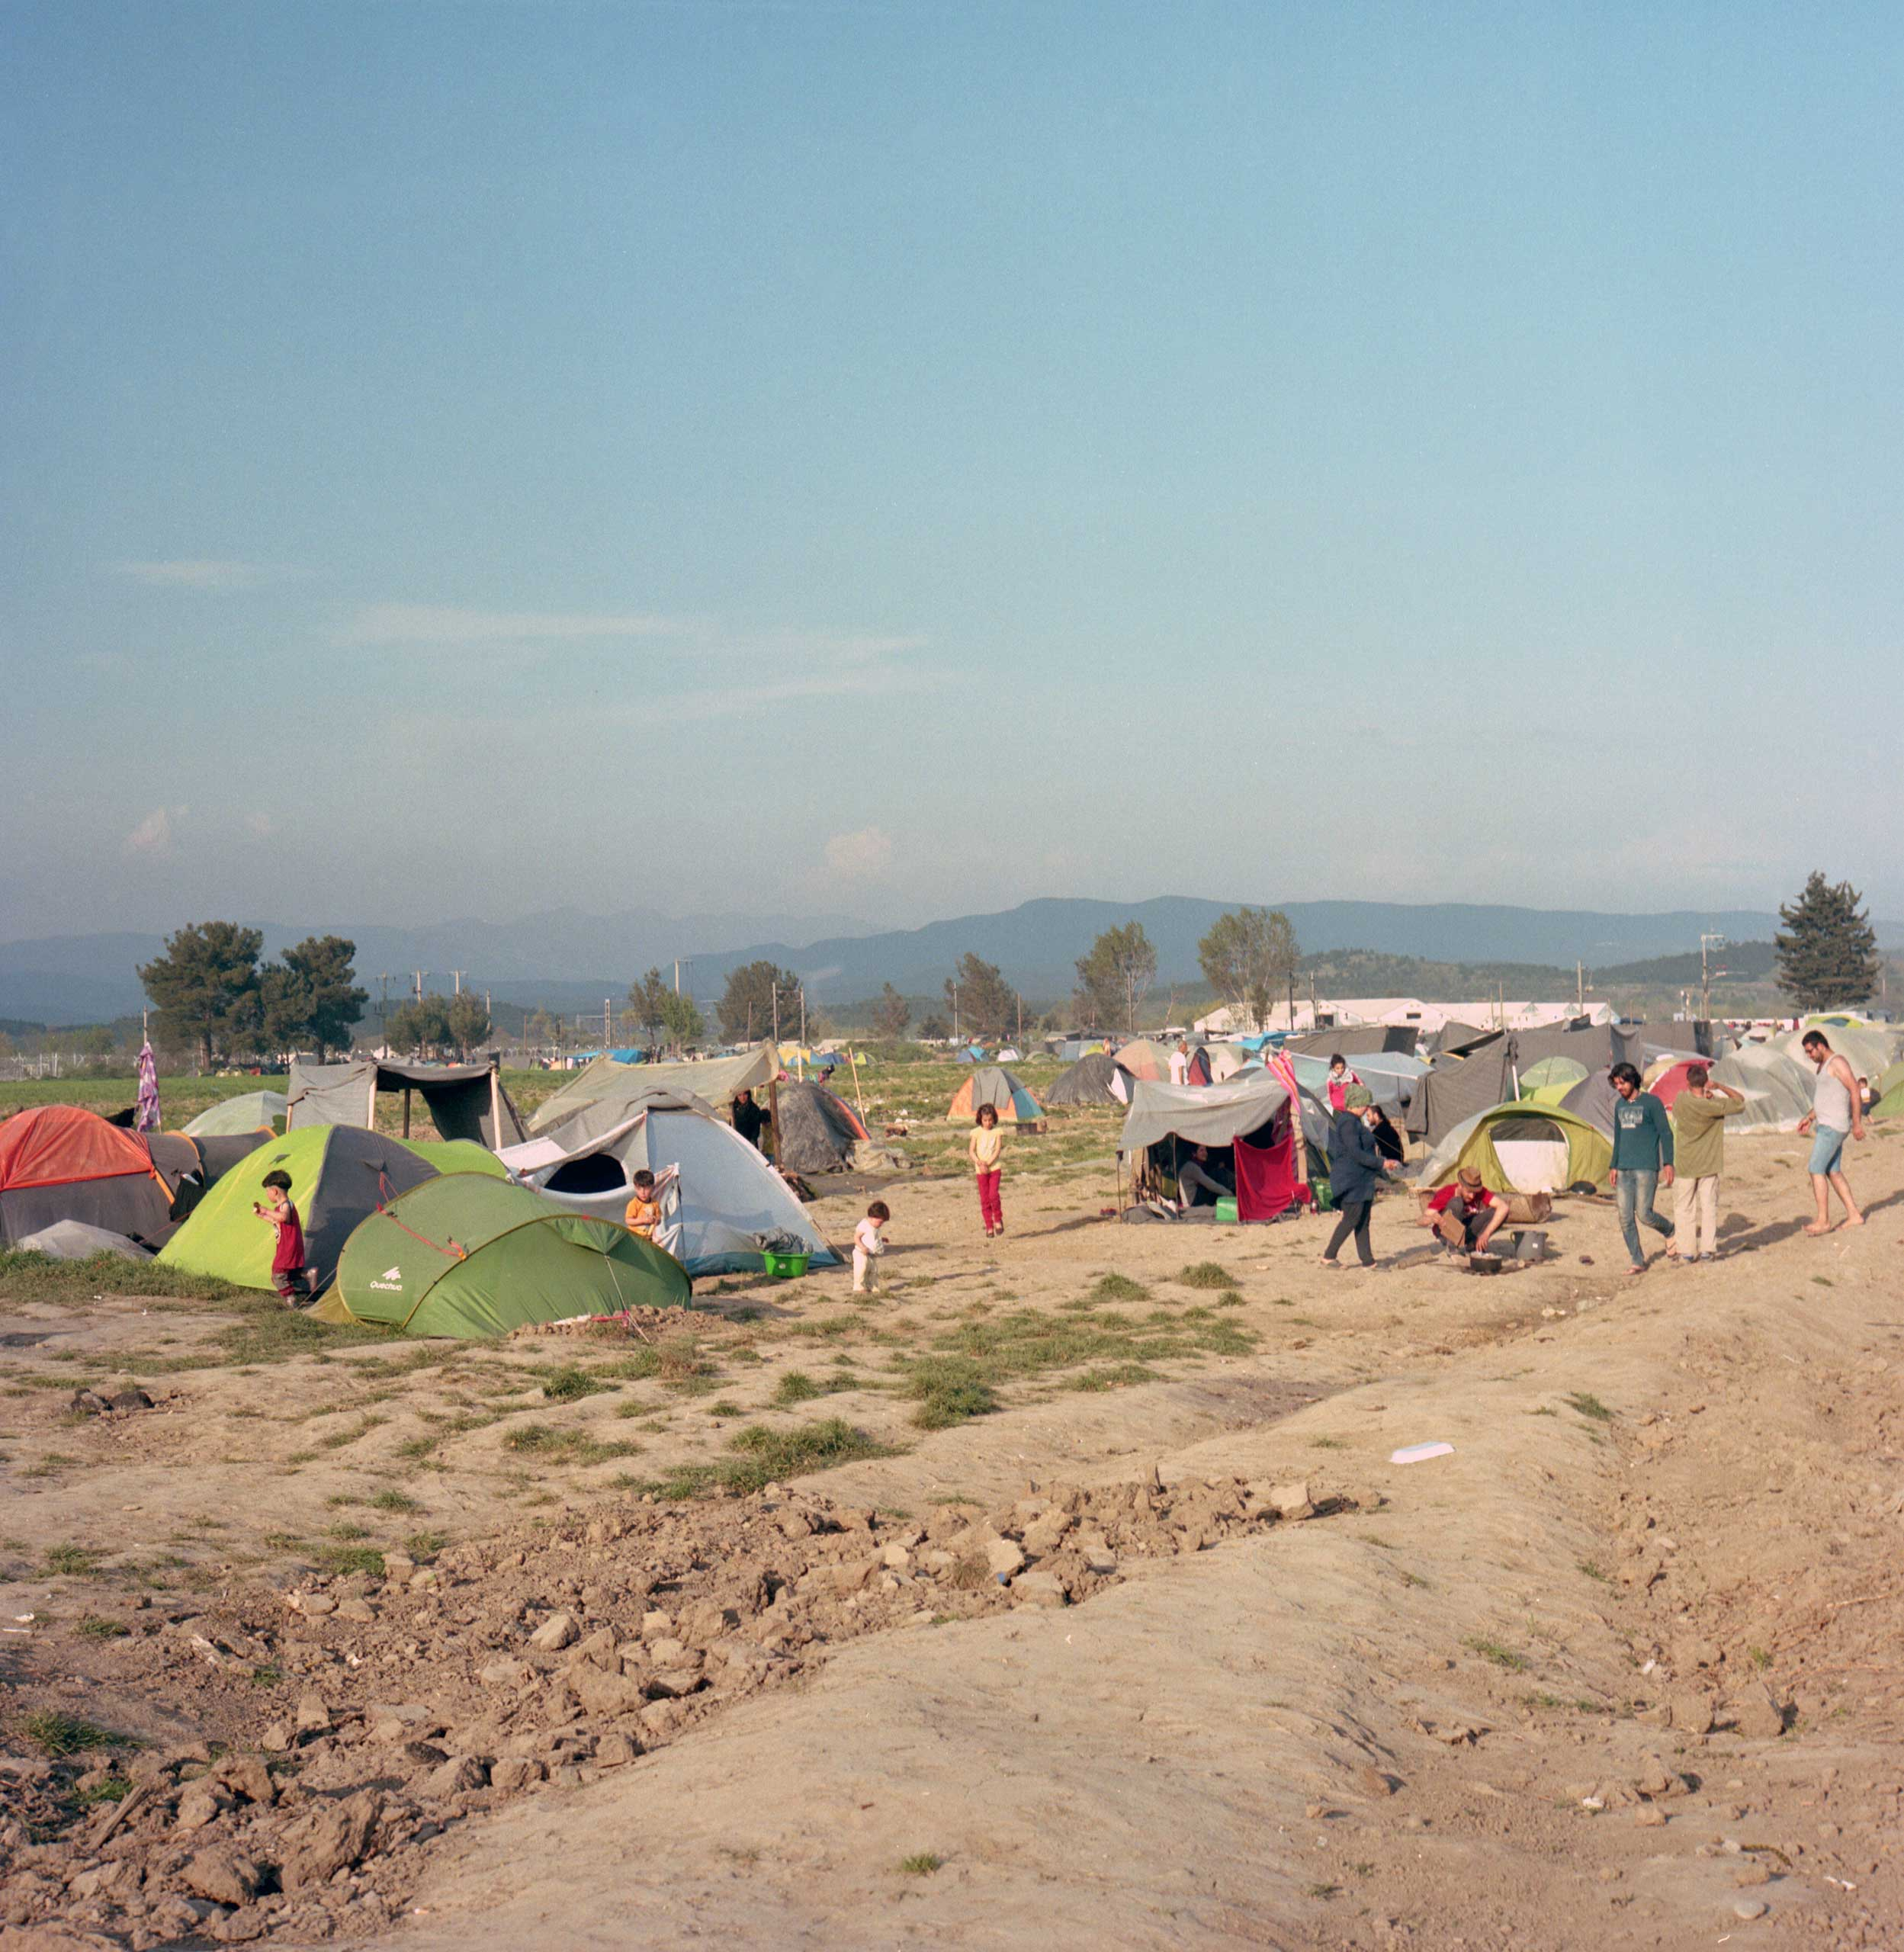 Refugee tents have spread on nearly 250 acres of Lazarous Oulis' farm land. He claims to have lost 20,000 Euros in revenues, for which he says he has not received any compensation. Idomeni, Greece. April, 2016.